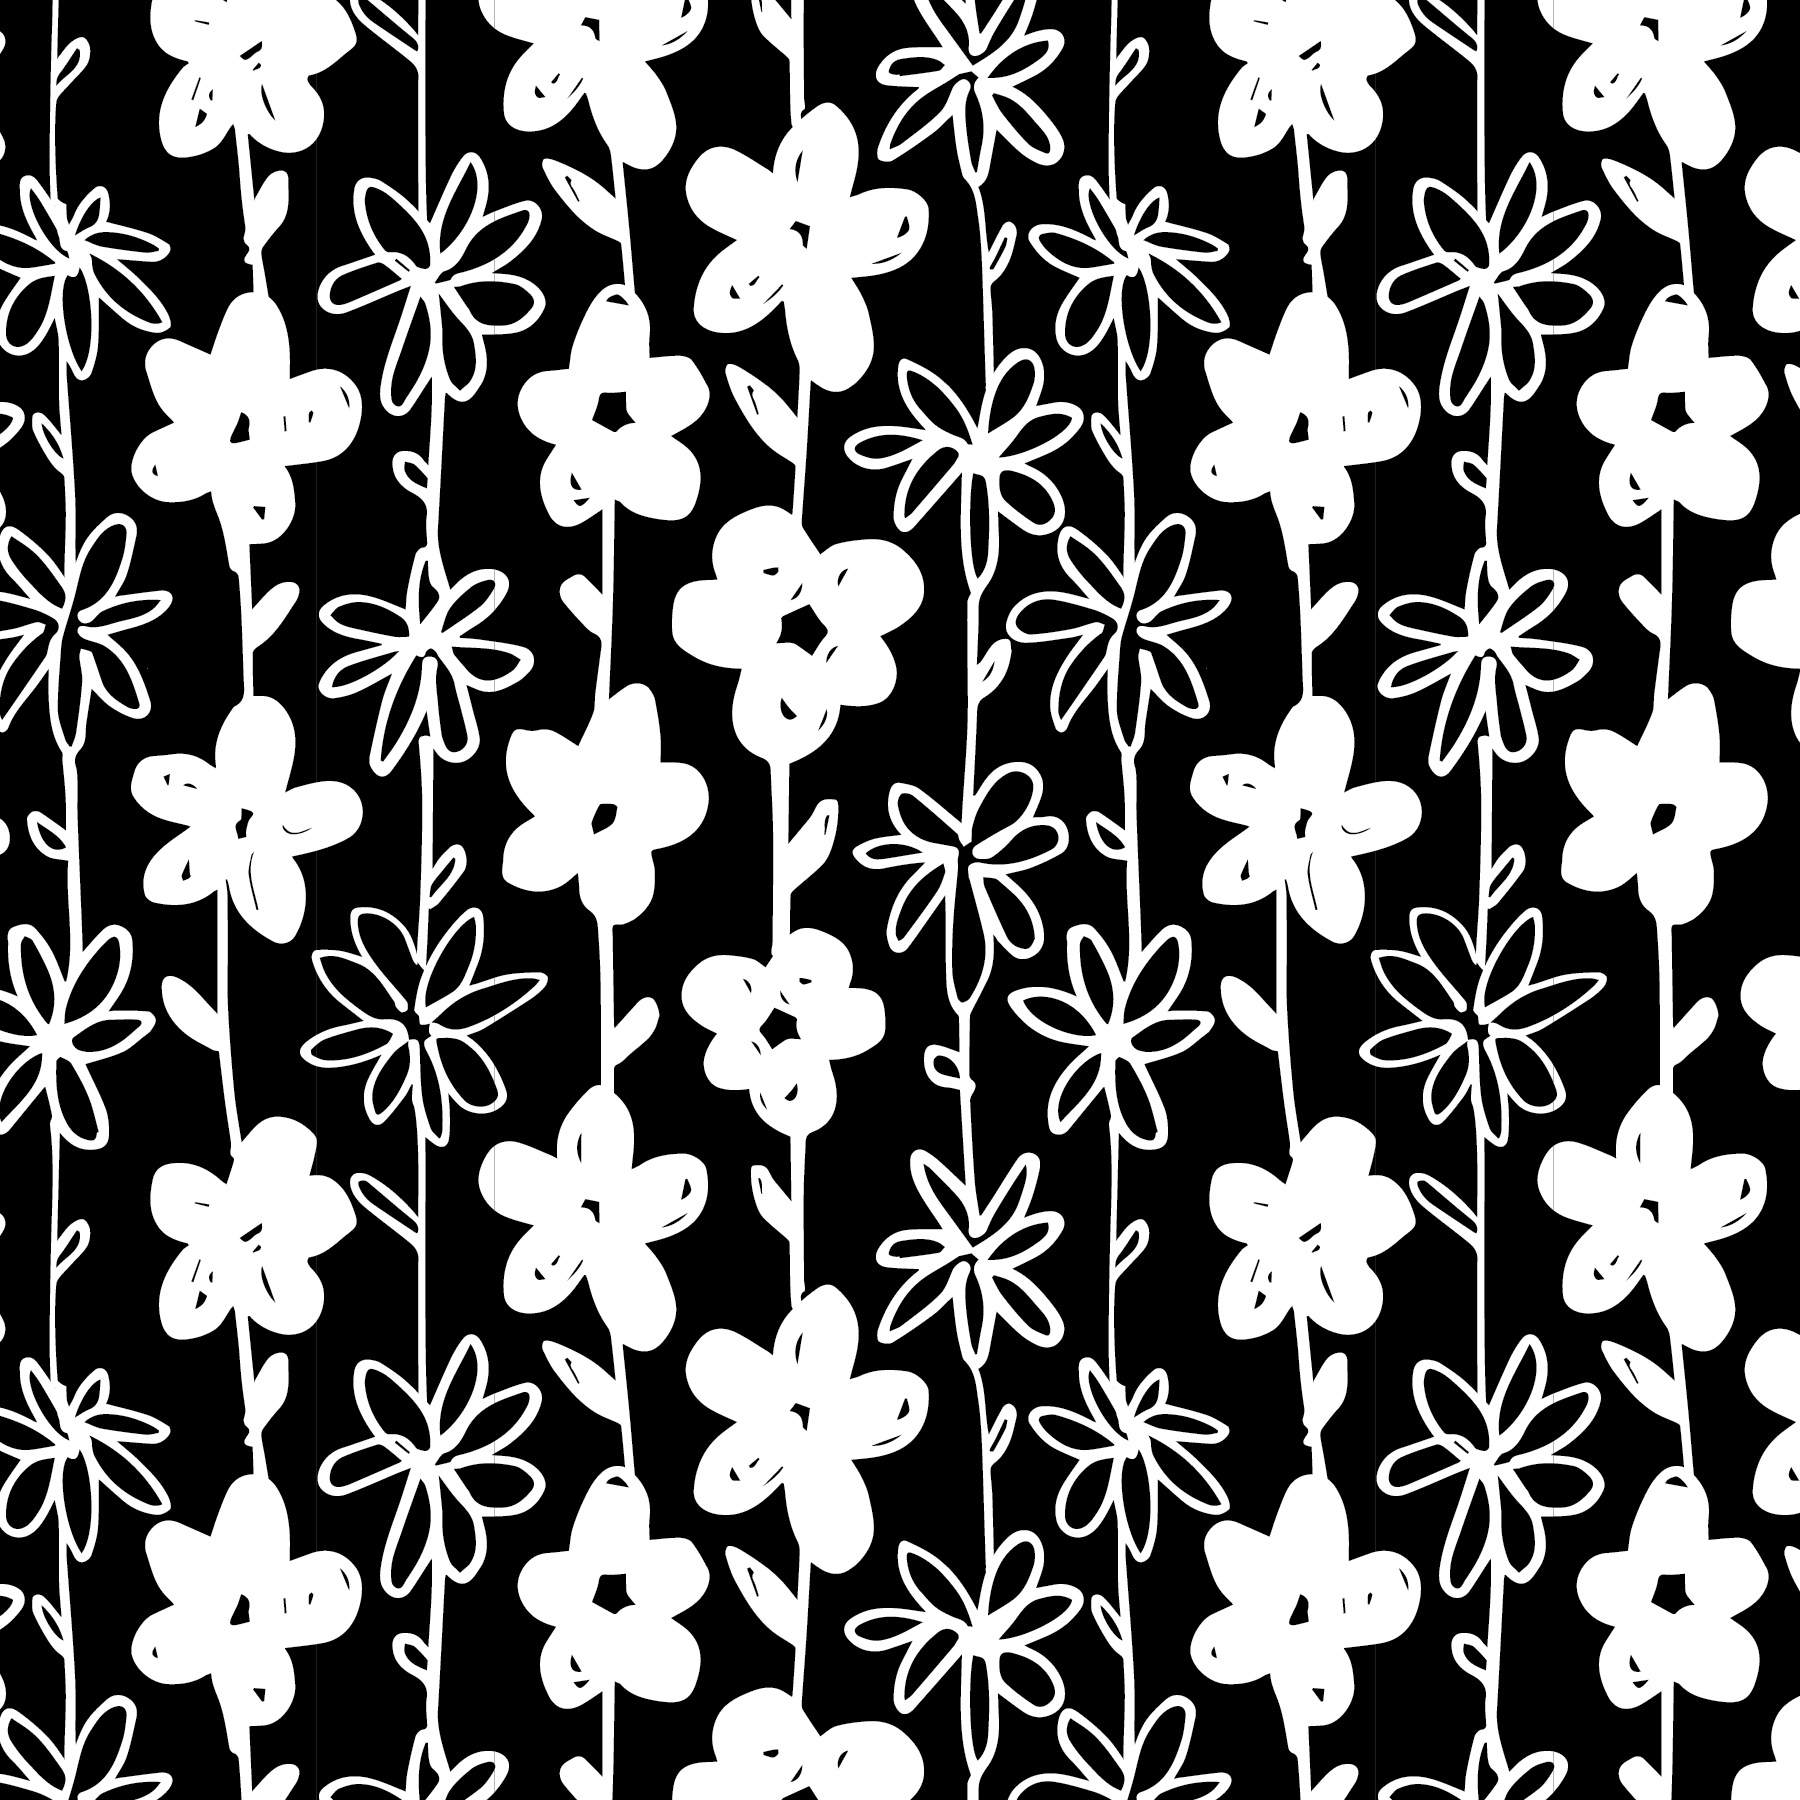 F&F print swatches_BW floral